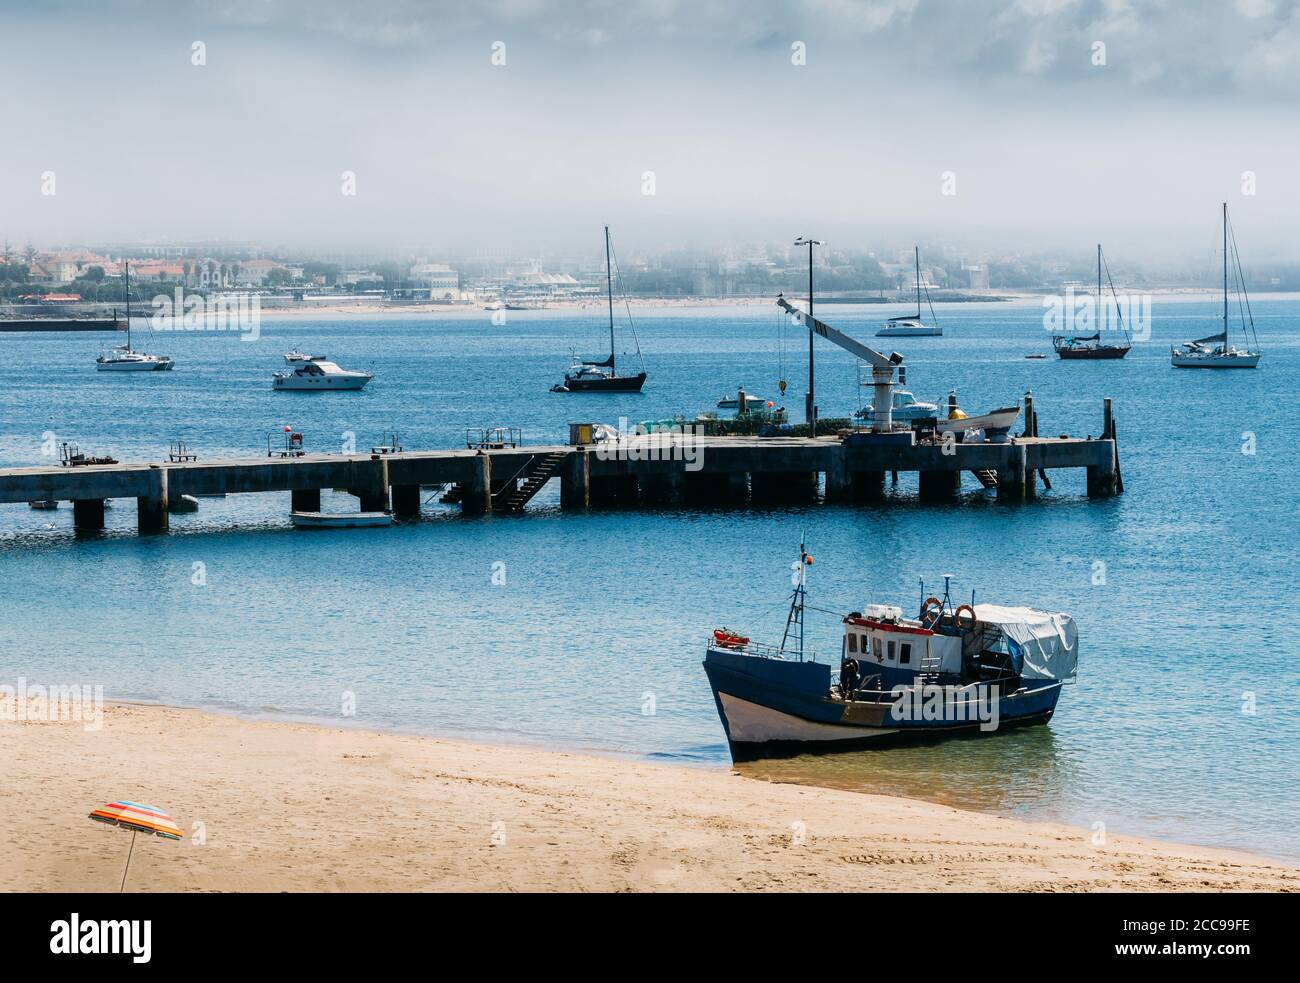 wooden-fishing-boat-moored-on-empty-ribeira-beach-in-cascais-portugal-with-scenic-background-2CC99FE.jpg